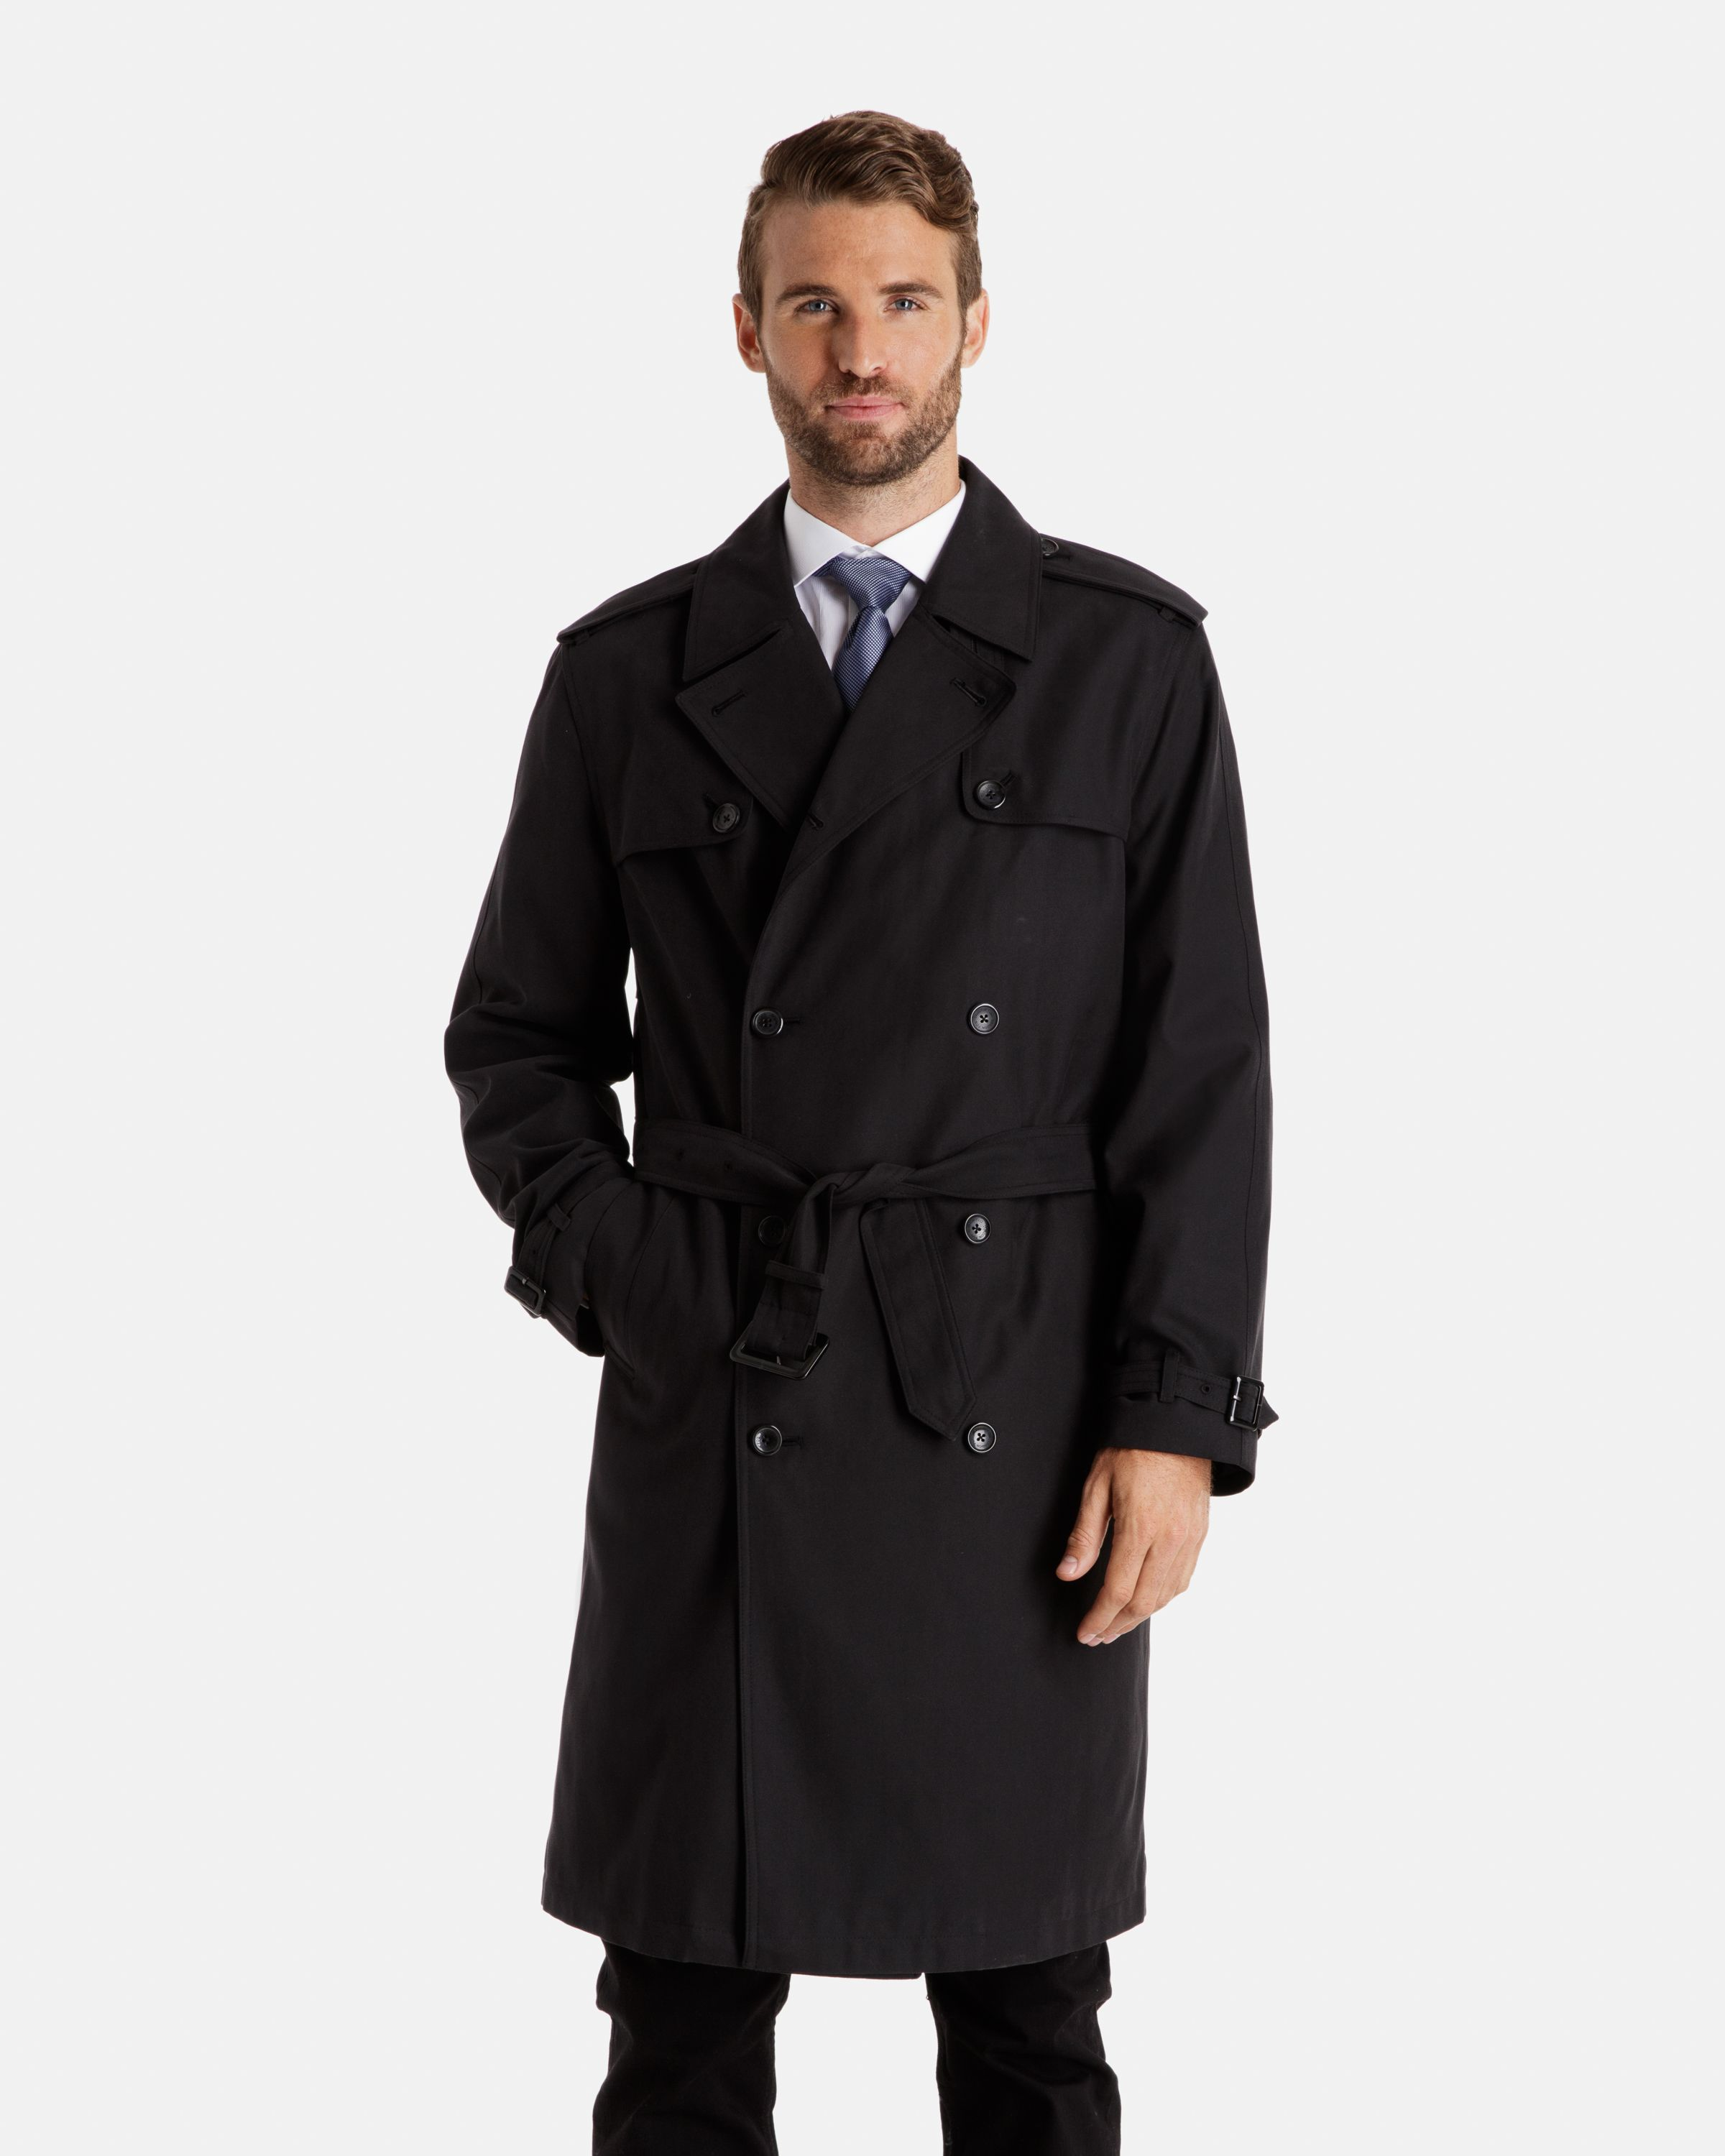 da047b3243f London Fog Plymouth Double Breasted Trench Coat with Double Gun Flap [On  Sale for $149]